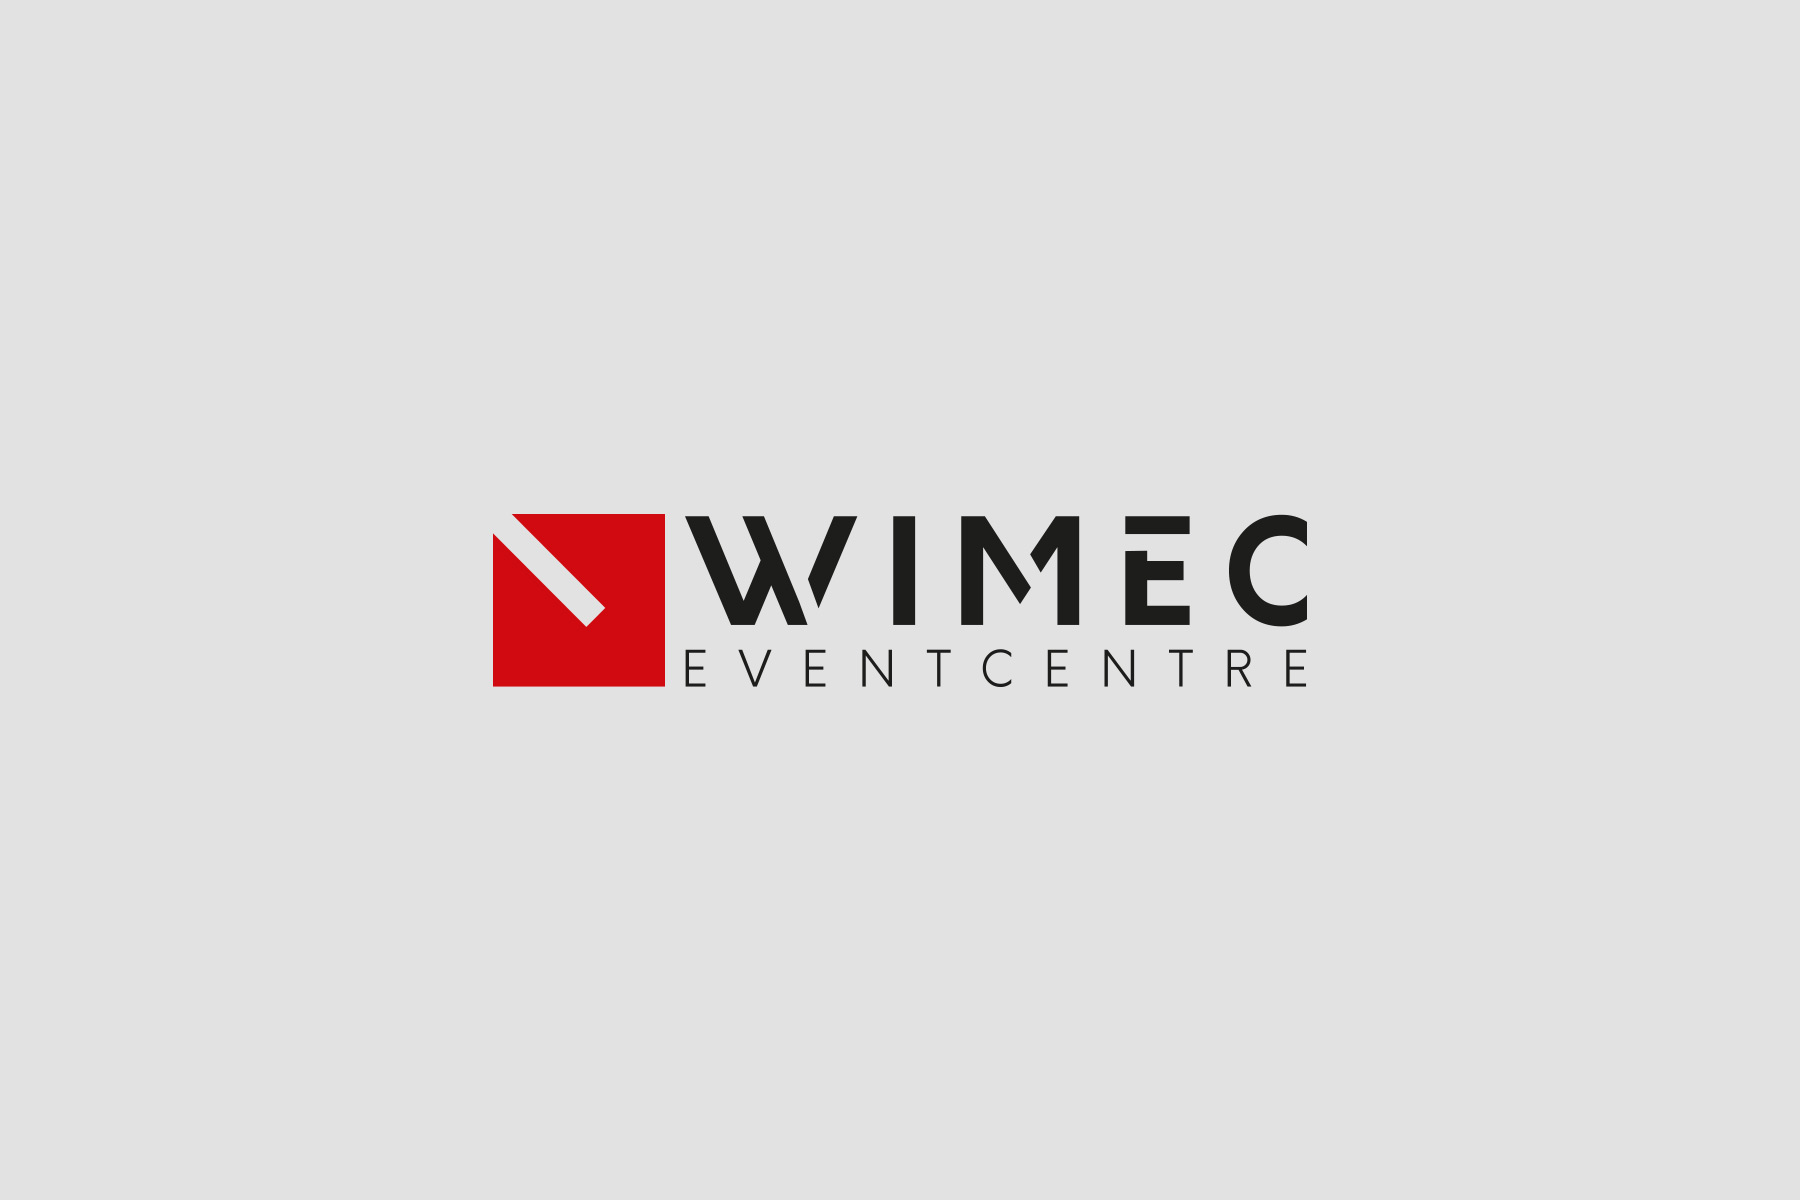 wimec eventcentre